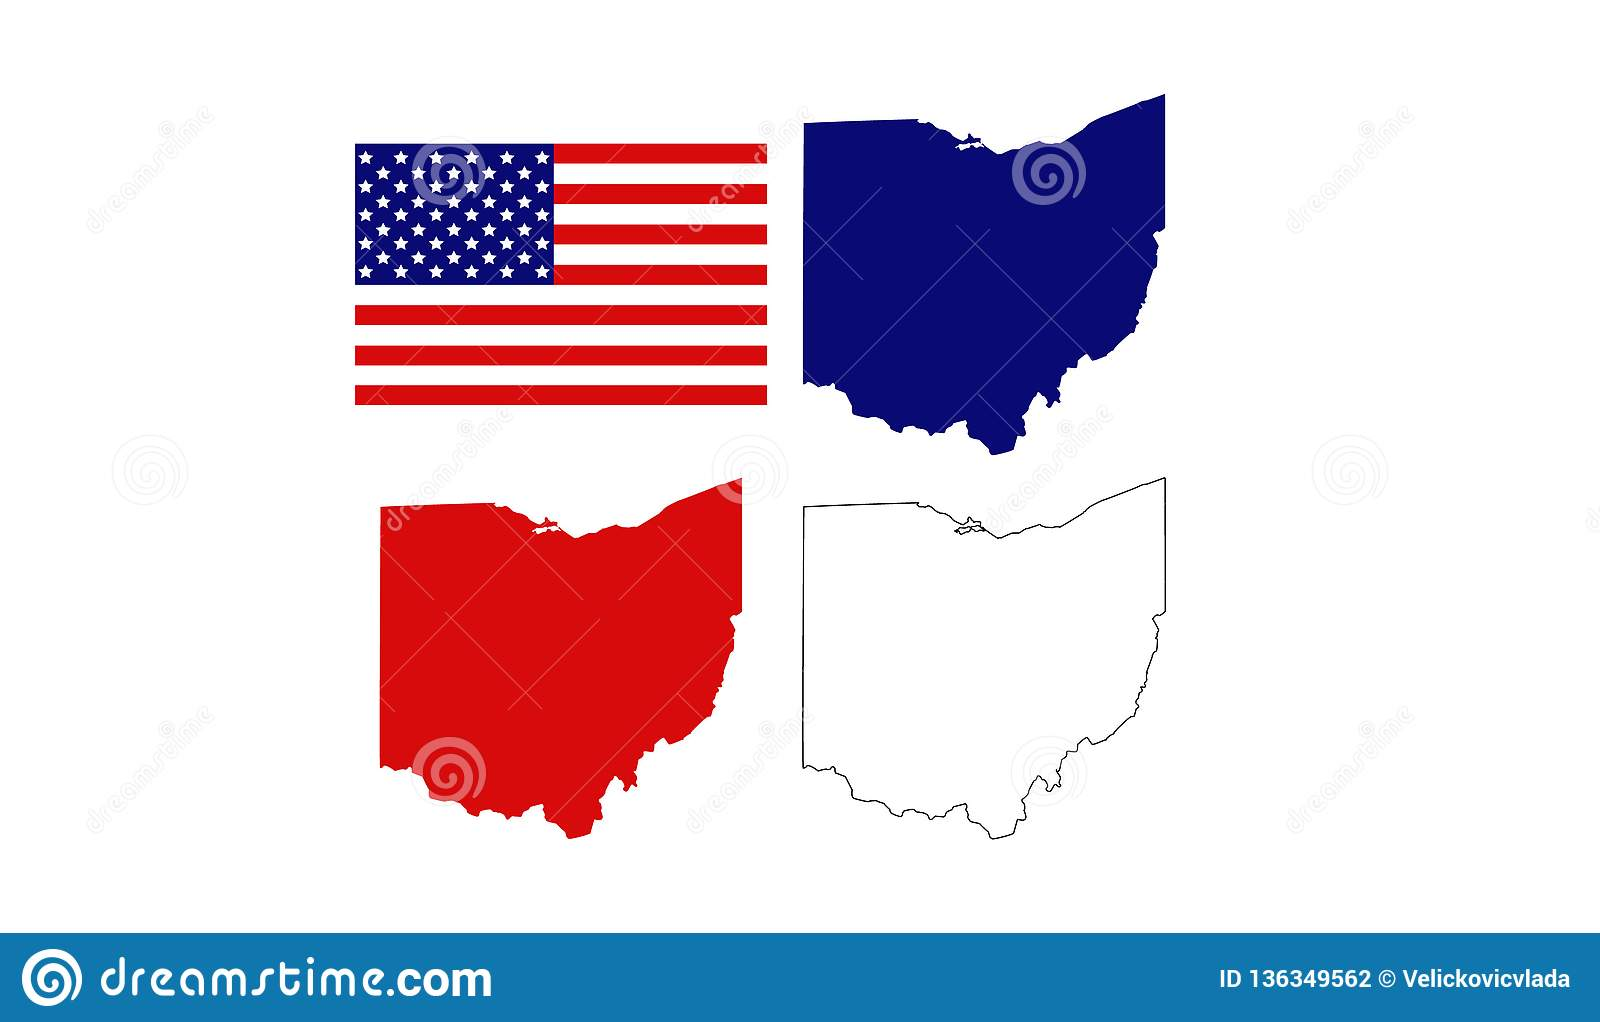 Ohio Maps With USA Flag - Midwestern State In The Great ...